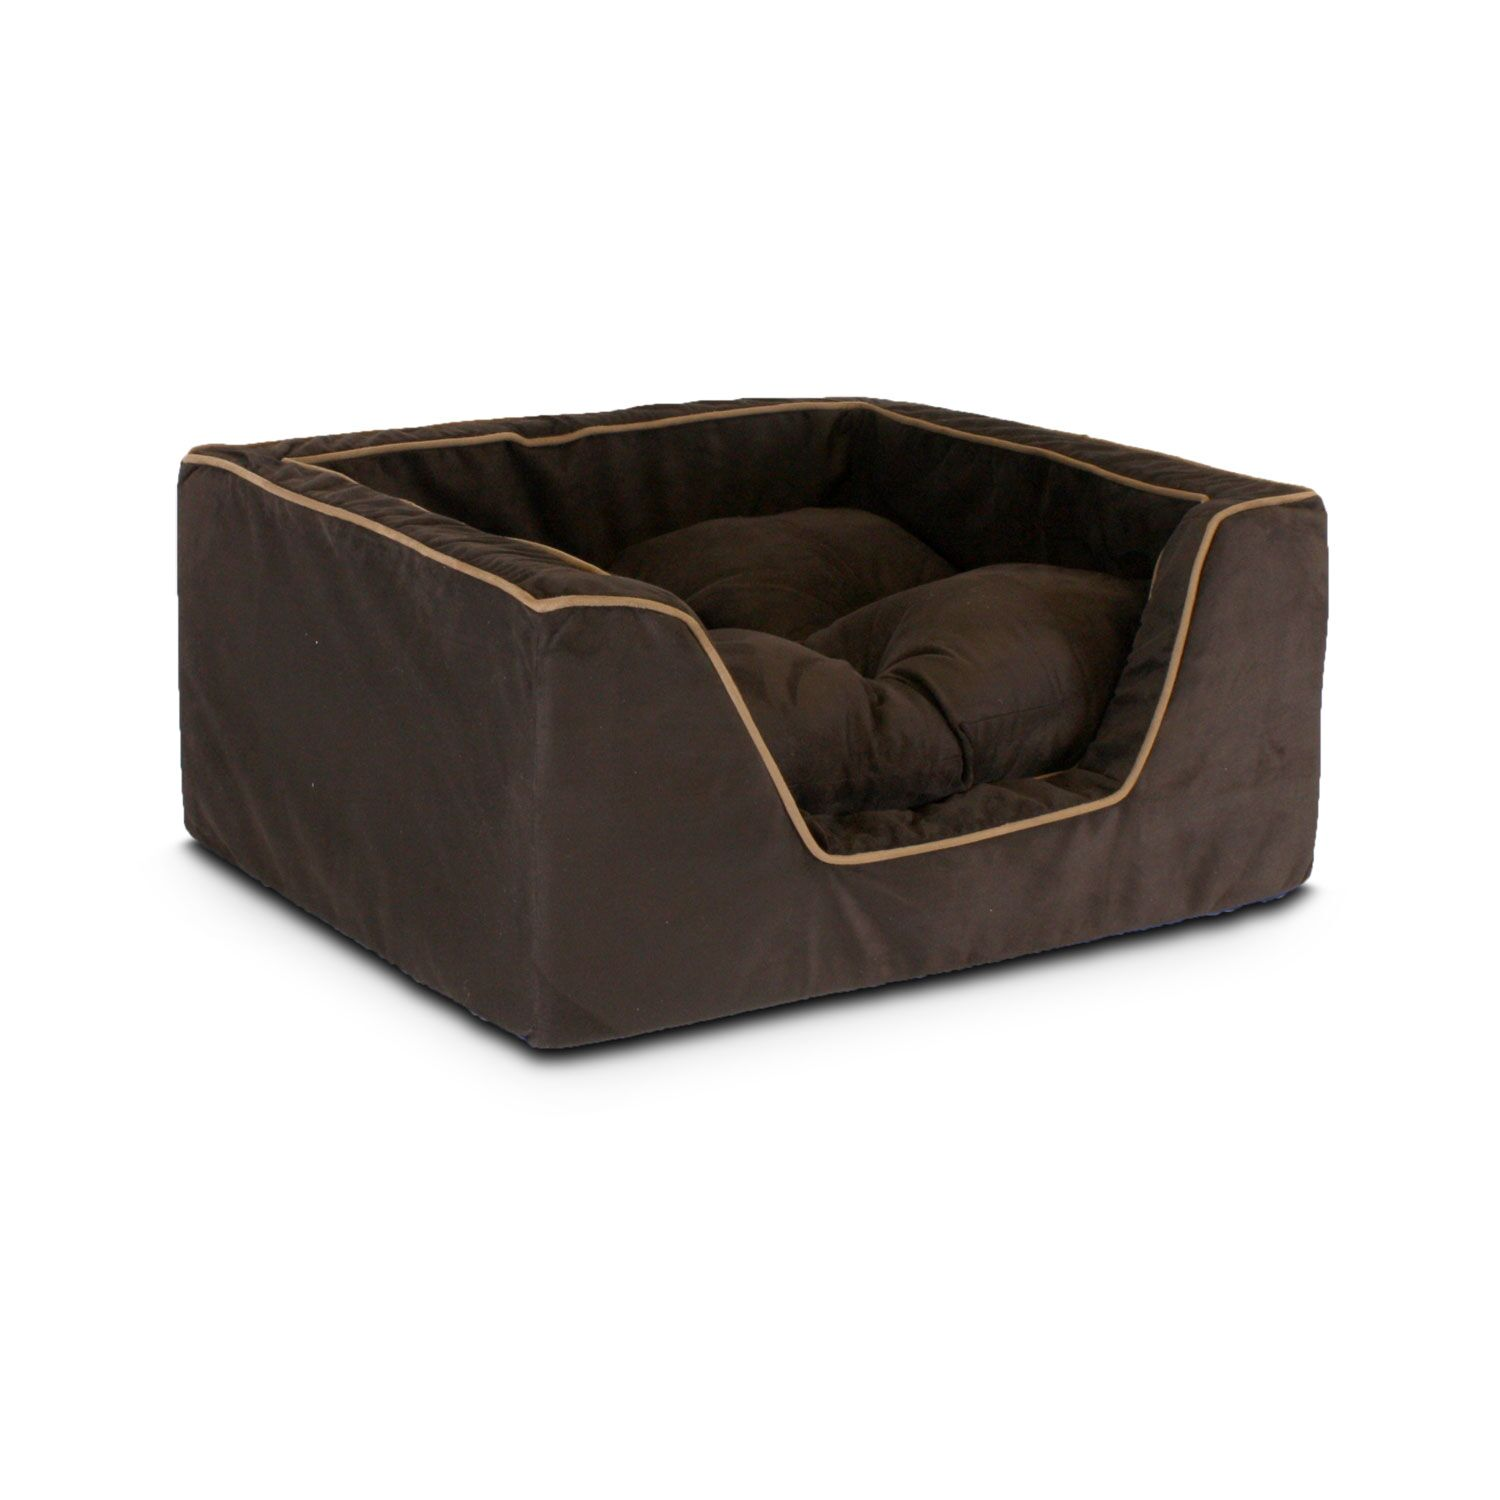 Luxury Square Nest Dog Bed Size: X-Large (31.5